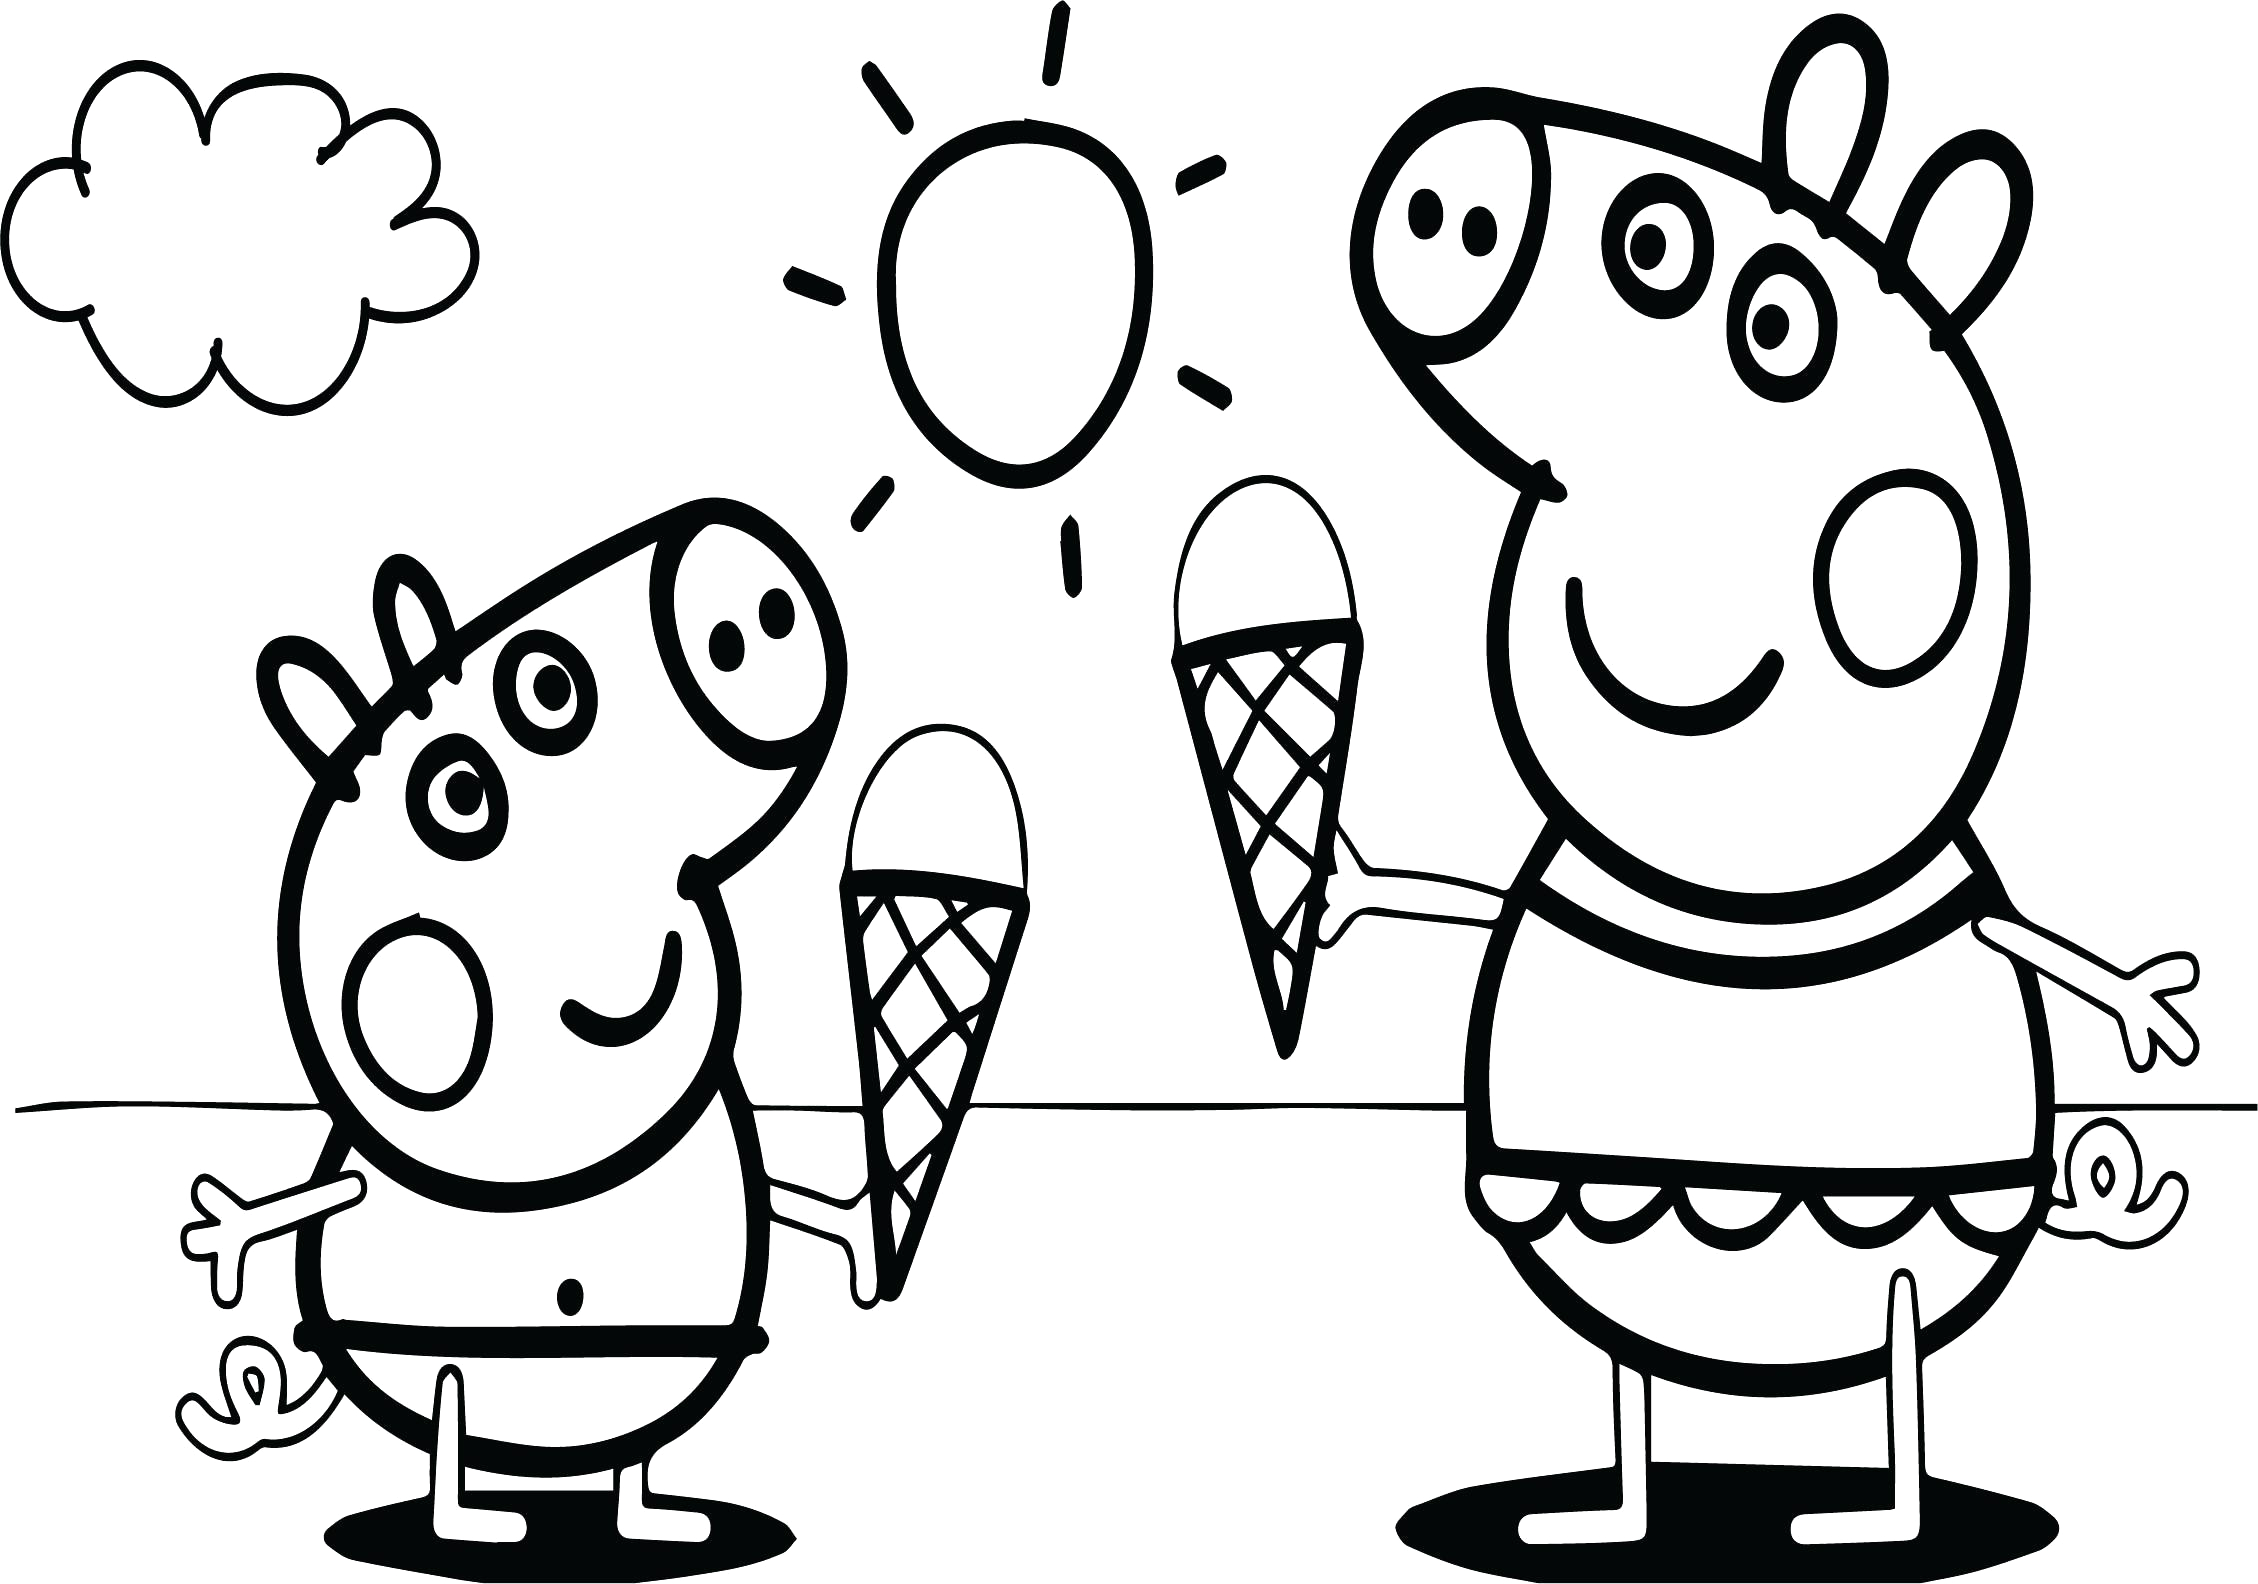 Free Peppa Pig Coloring Pages to Print Peppa Pig Family Coloring Pages at Getdrawings